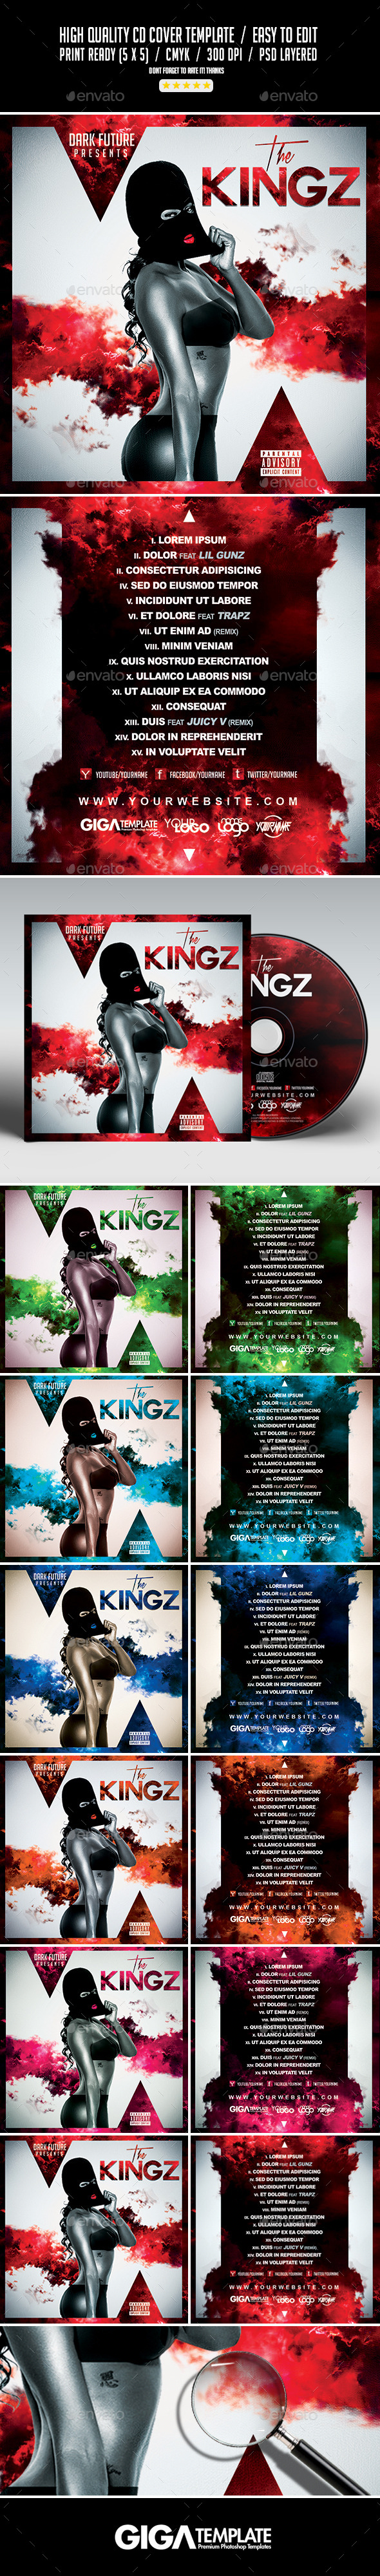 The Kingz Mixtape Tape Album CD Cover Template